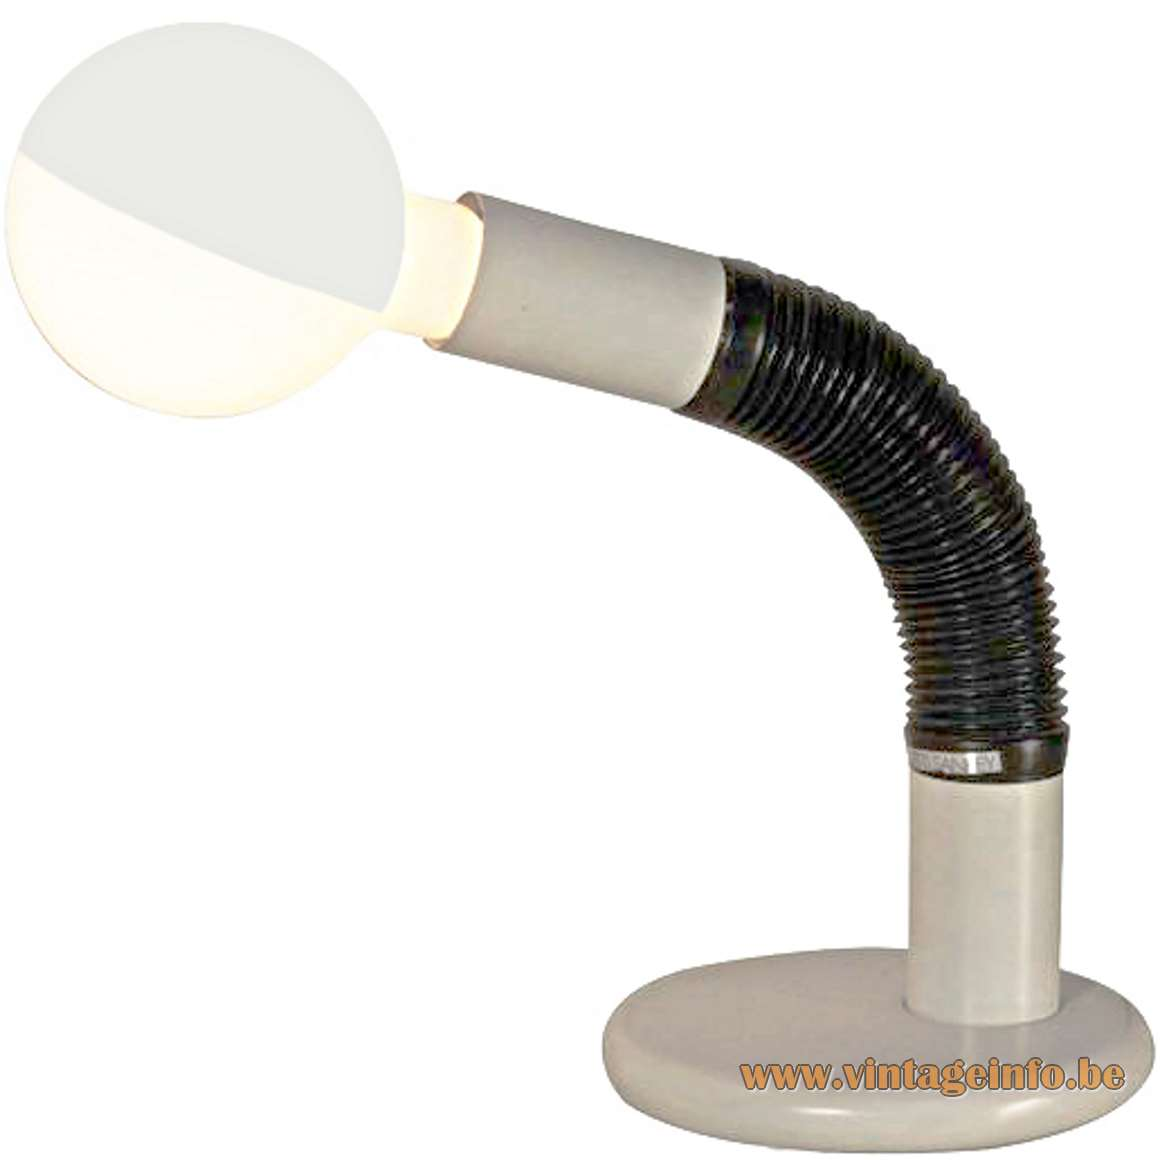 Targetti Sankey Elbow Desk Lamp - white version